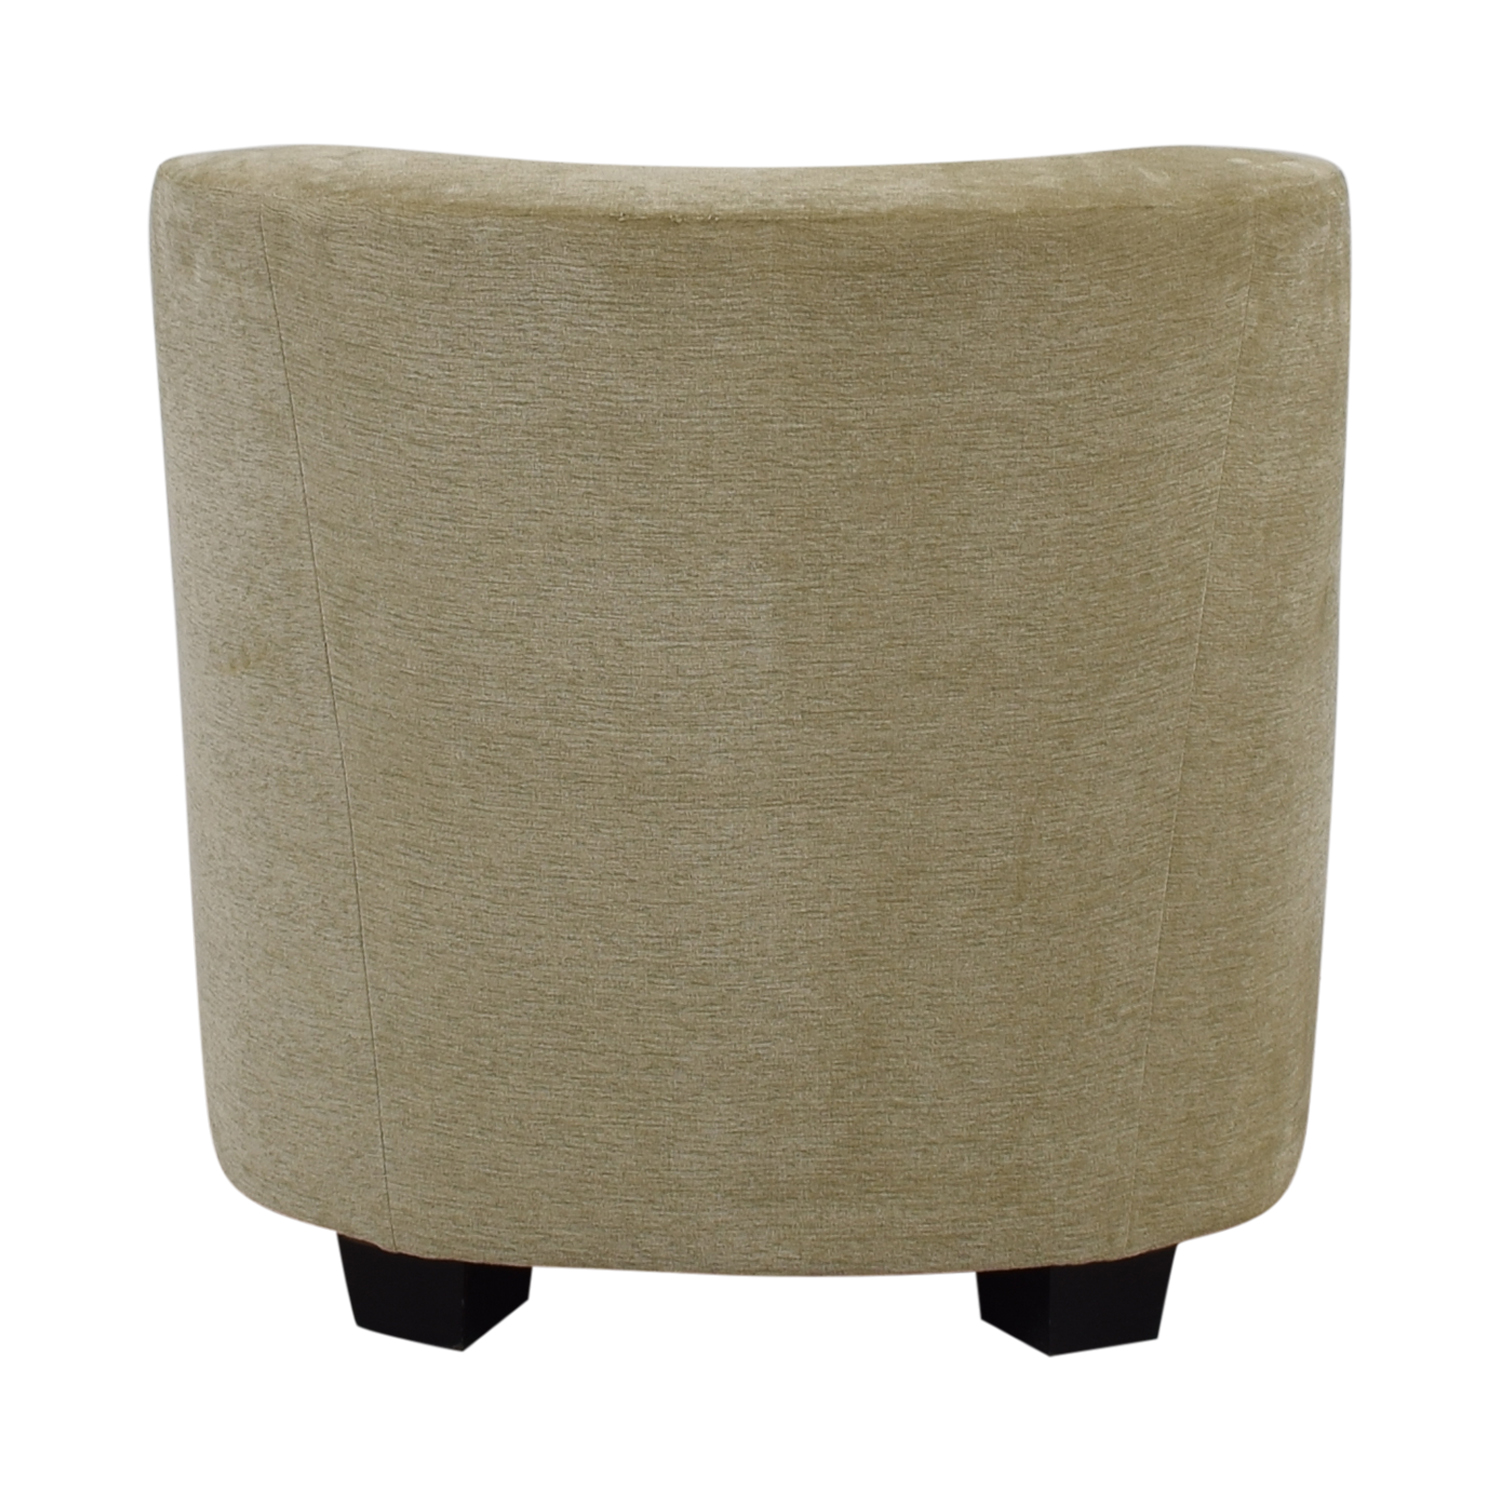 buy Furniture Masters Furniture Masters Beige Club Chair online